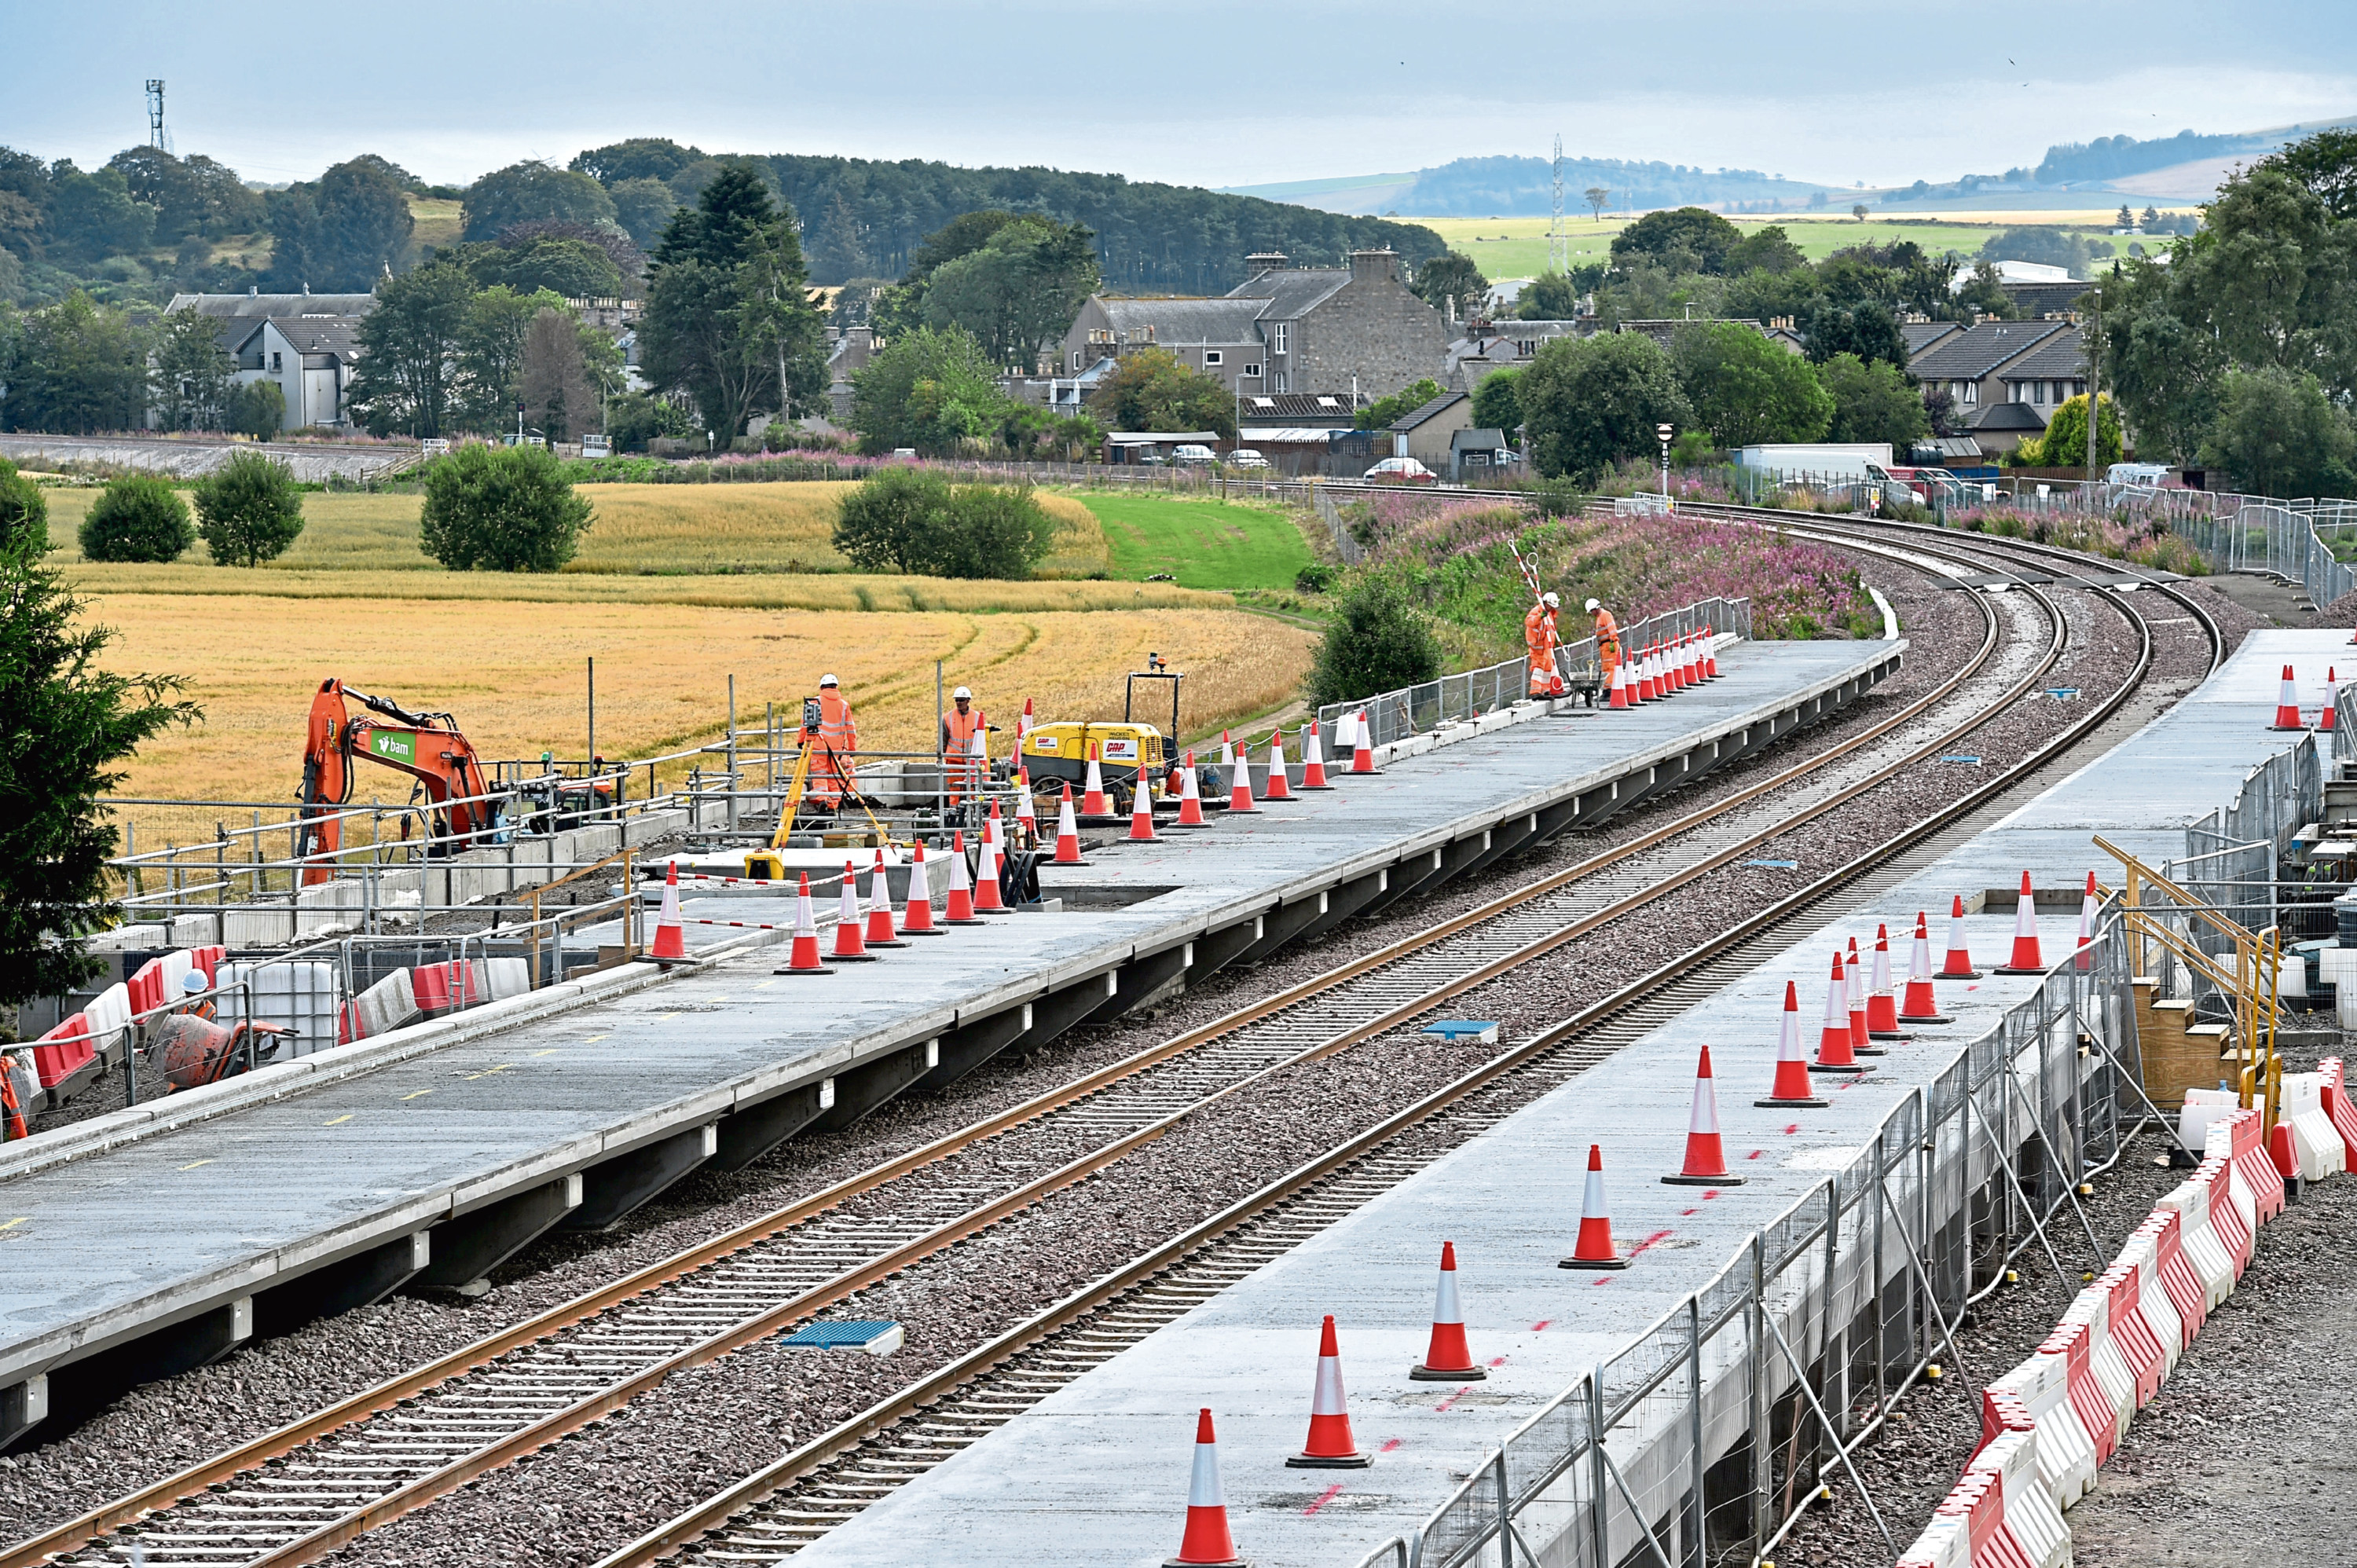 Kintore Station could provide a boost to the evironment.